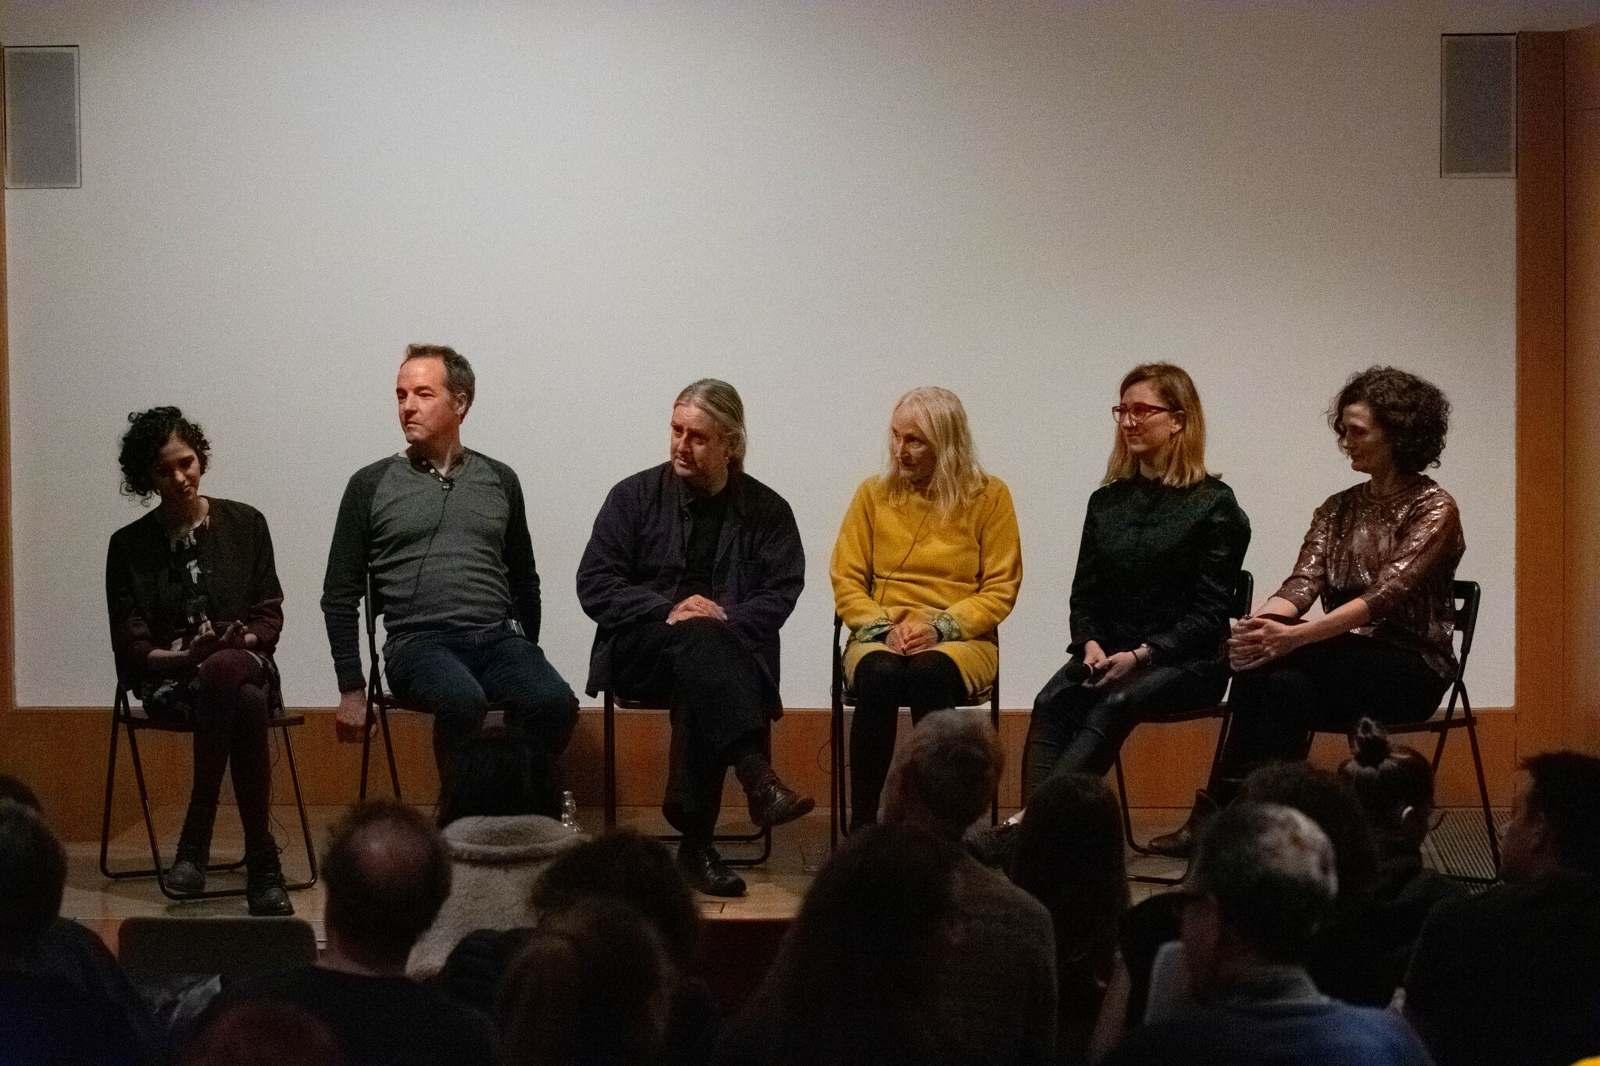 Q&A after Disasters of Peace vol.6, with Shubanghi Sihgn, Reed O'Beirne, Richard Ashrowan, Cecelia Condit and Sam Jury. Photo by Zula Ra